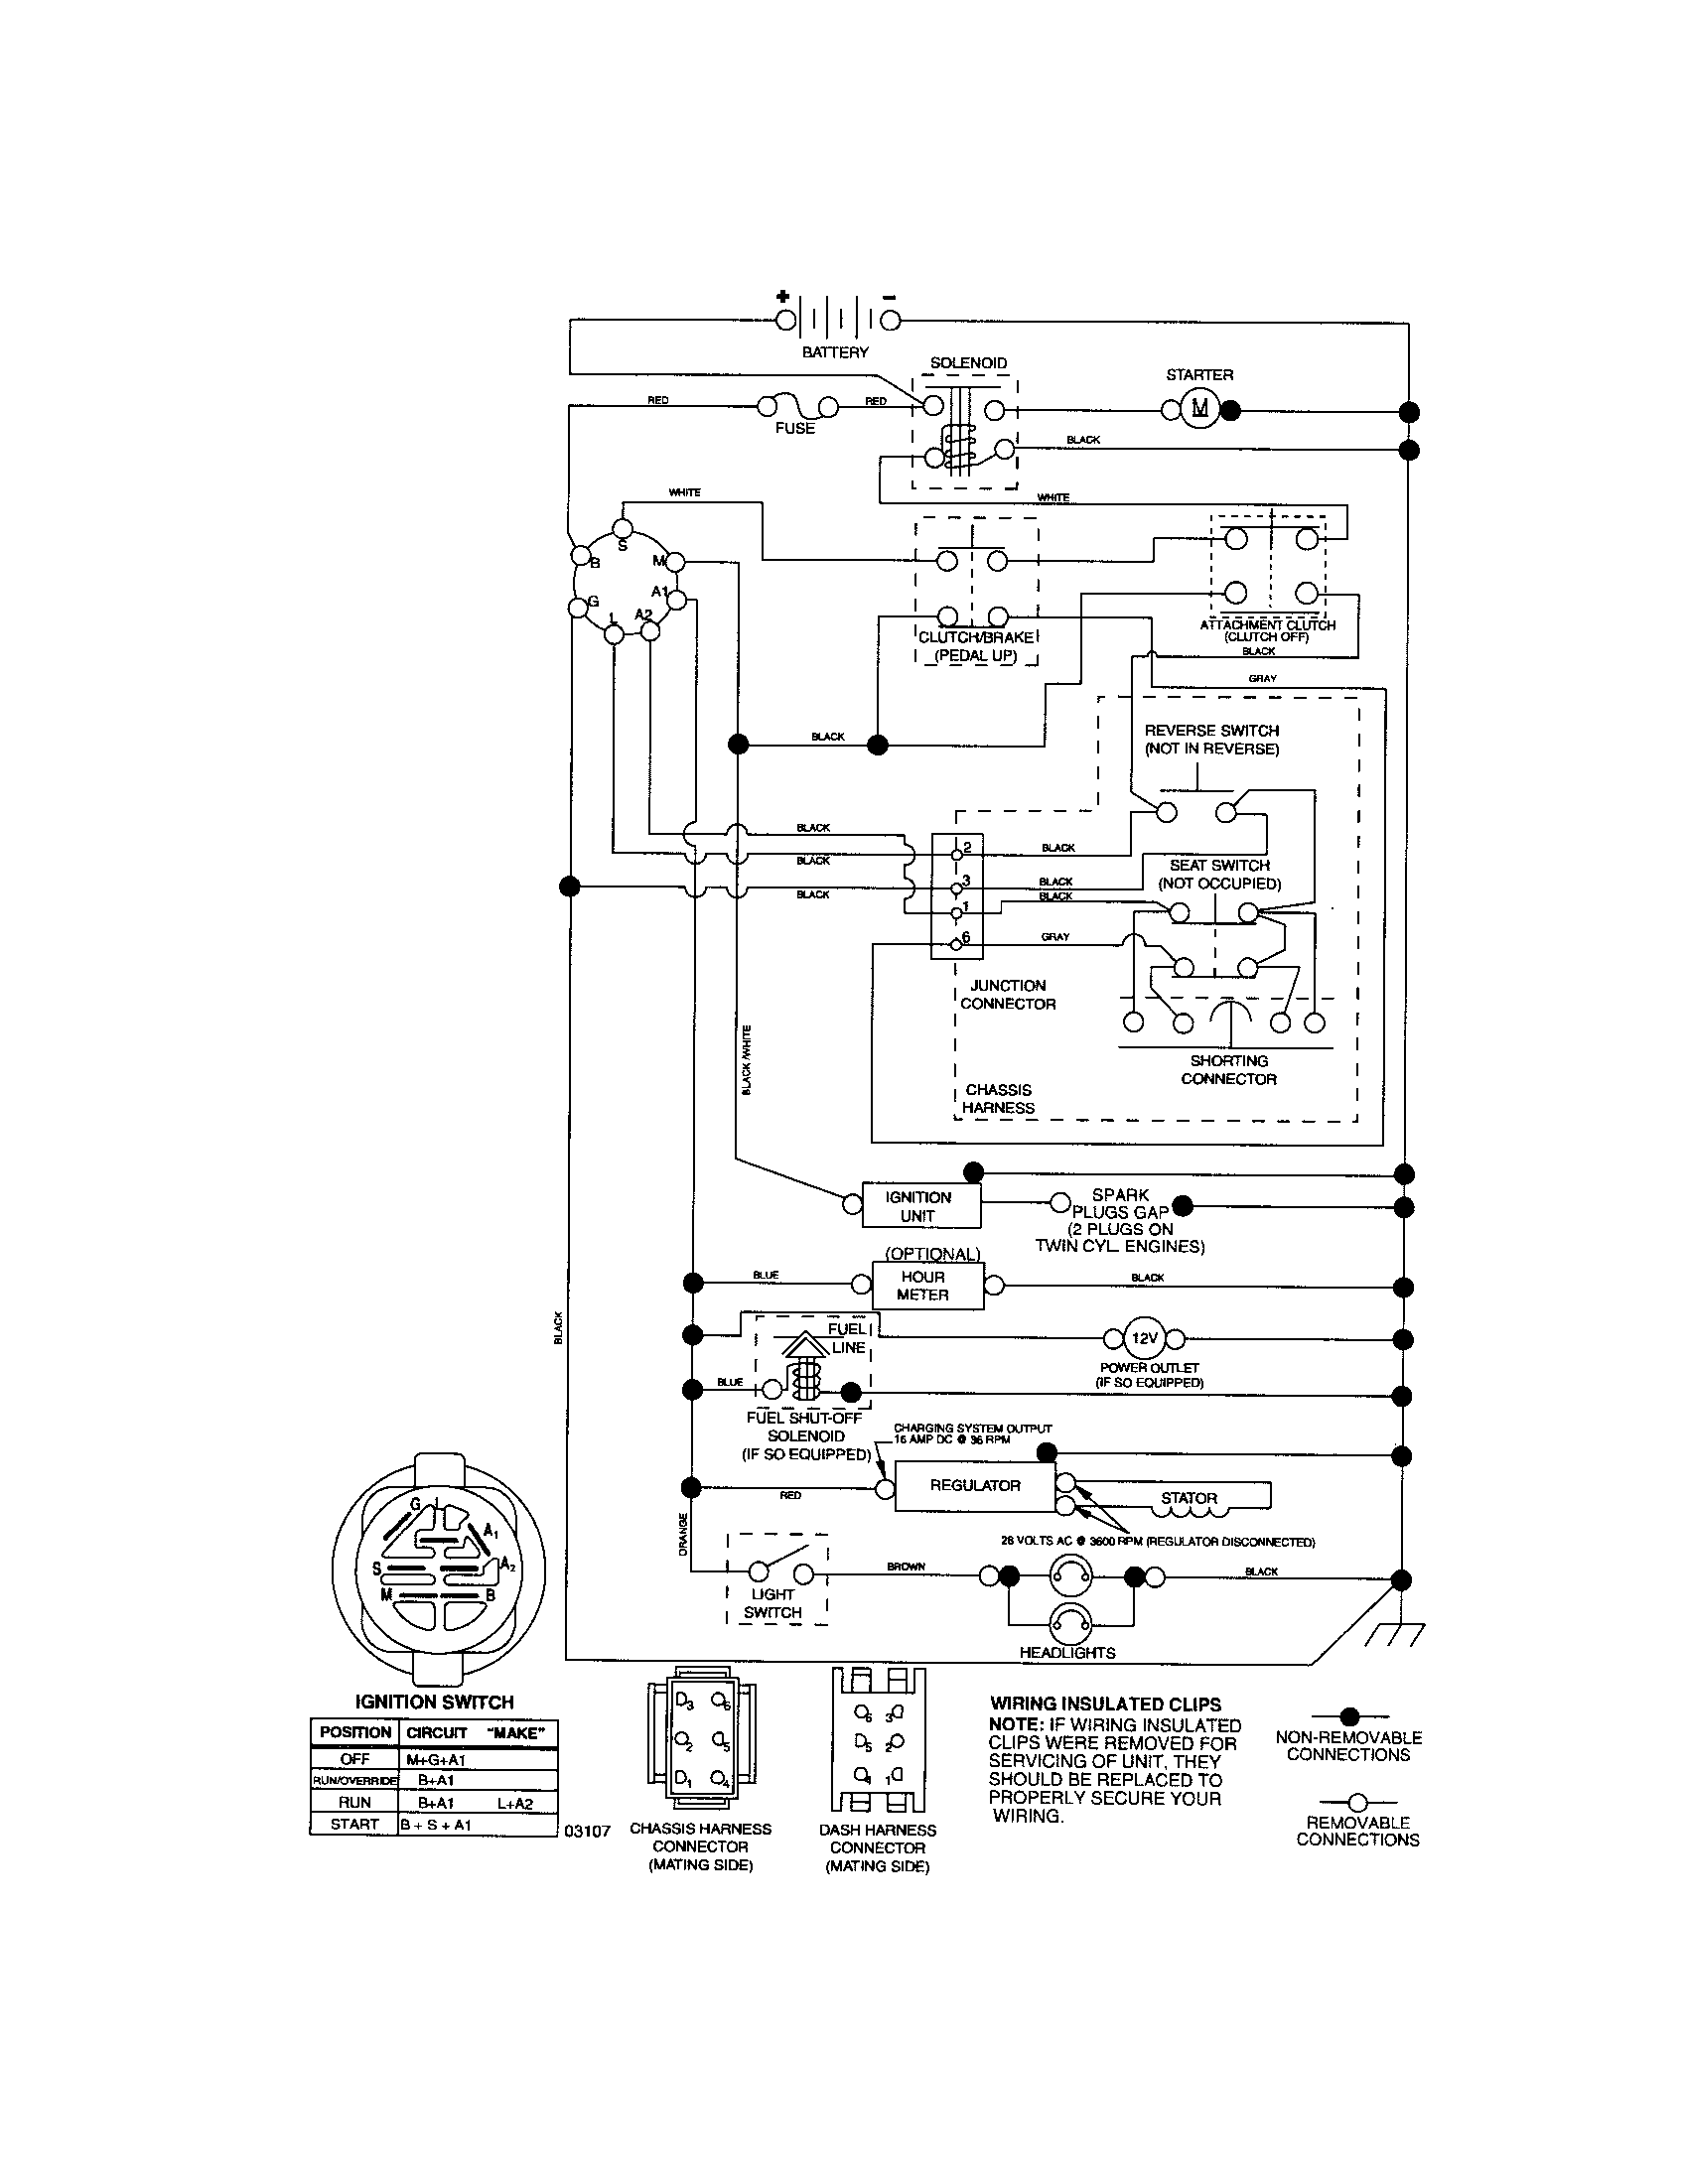 6af5f1447fd13c8443376822ddc1e105 craftsman riding mower electrical diagram wiring diagram,John Deere Lawn Mower Wiring Schematics